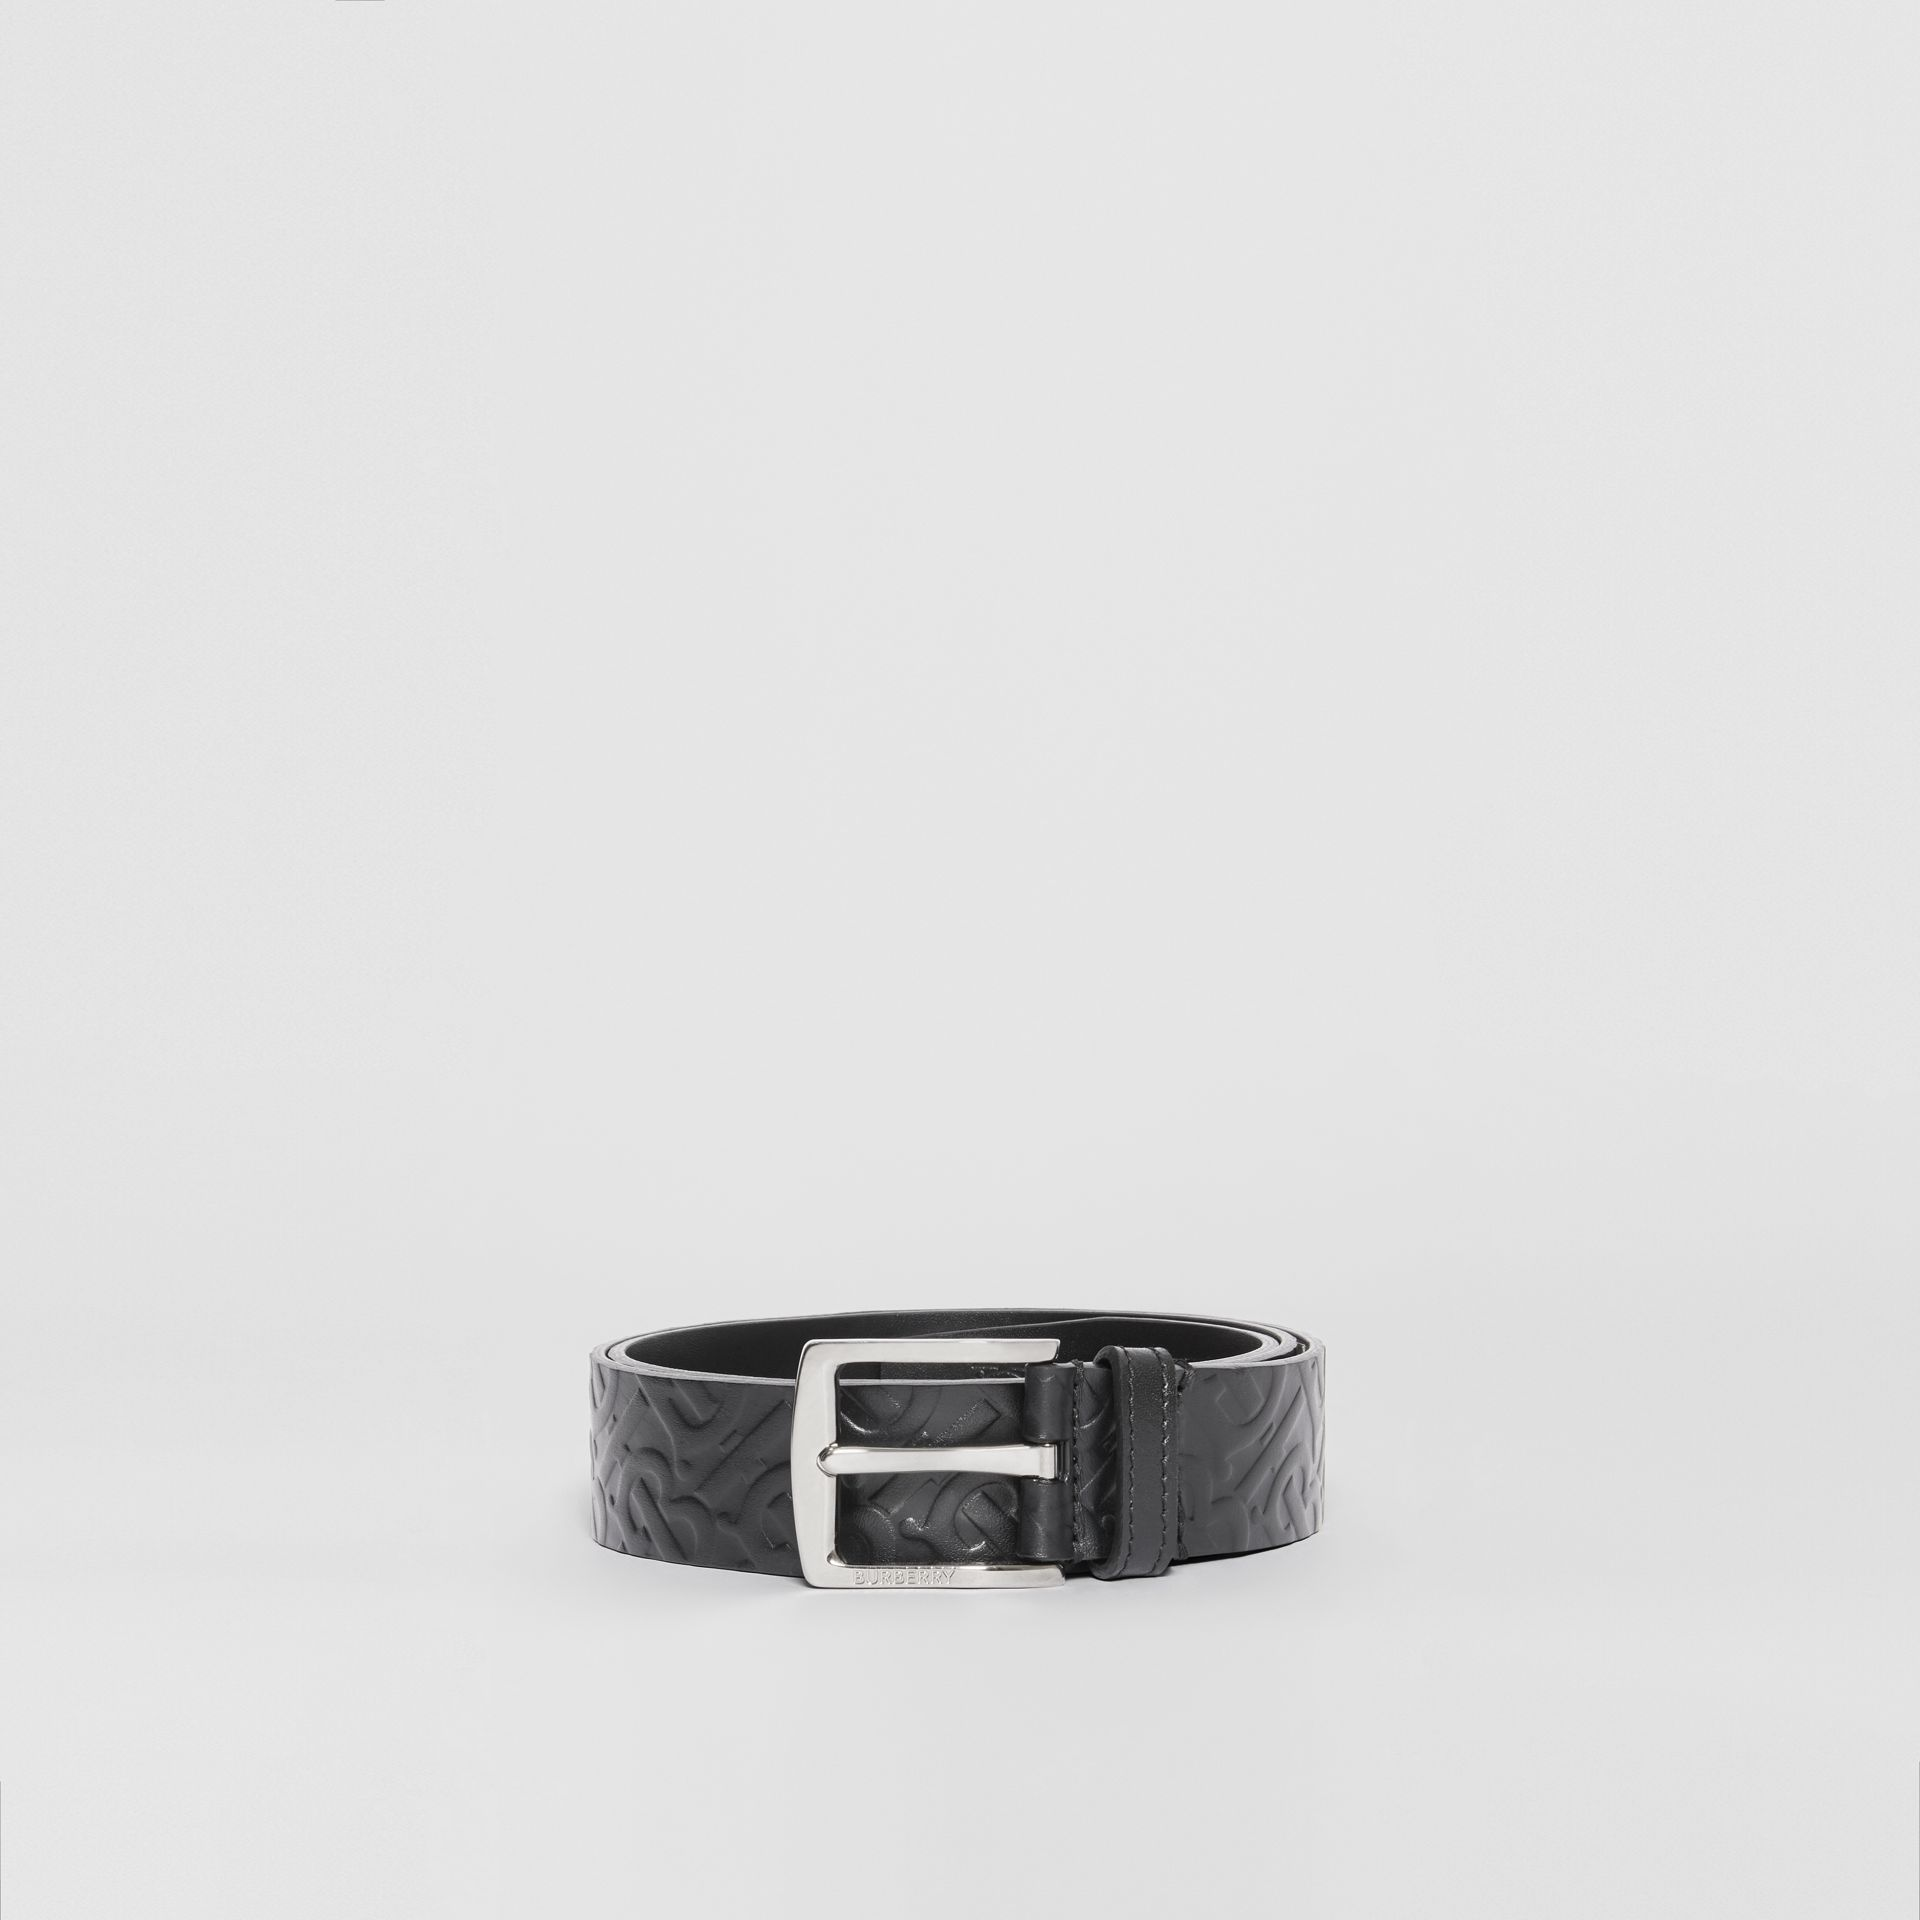 Monogram Leather Belt in Black - Men | Burberry Australia - gallery image 3